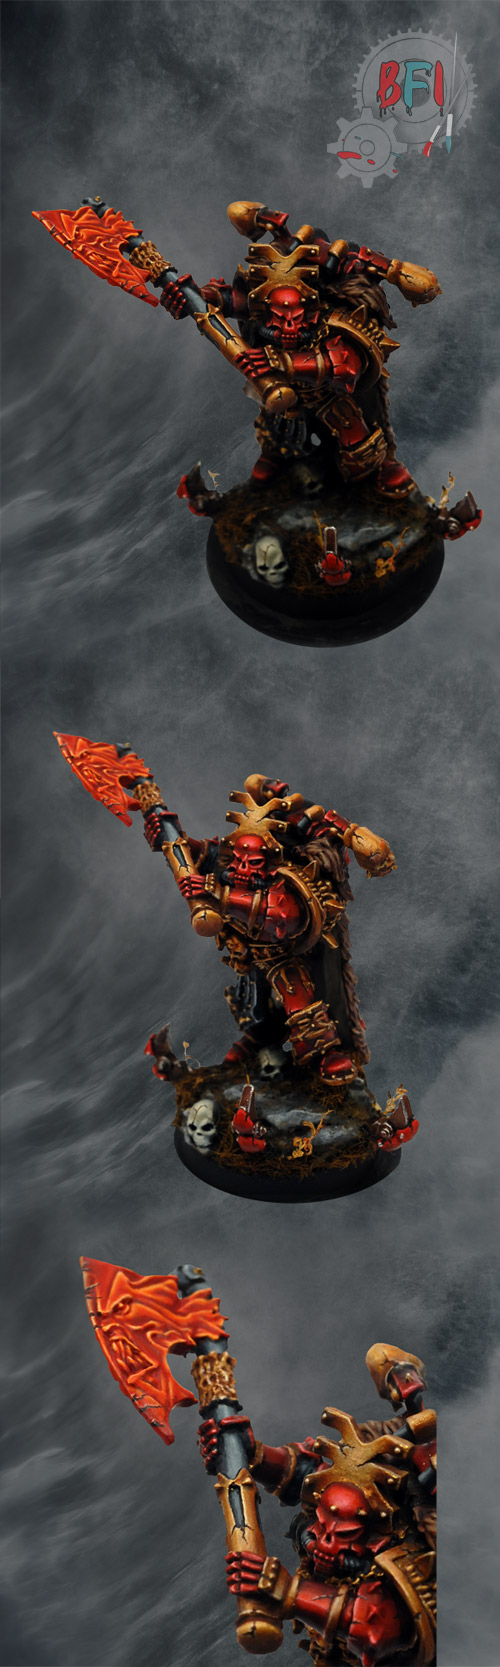 Lord of Khorne with Demonic Axe